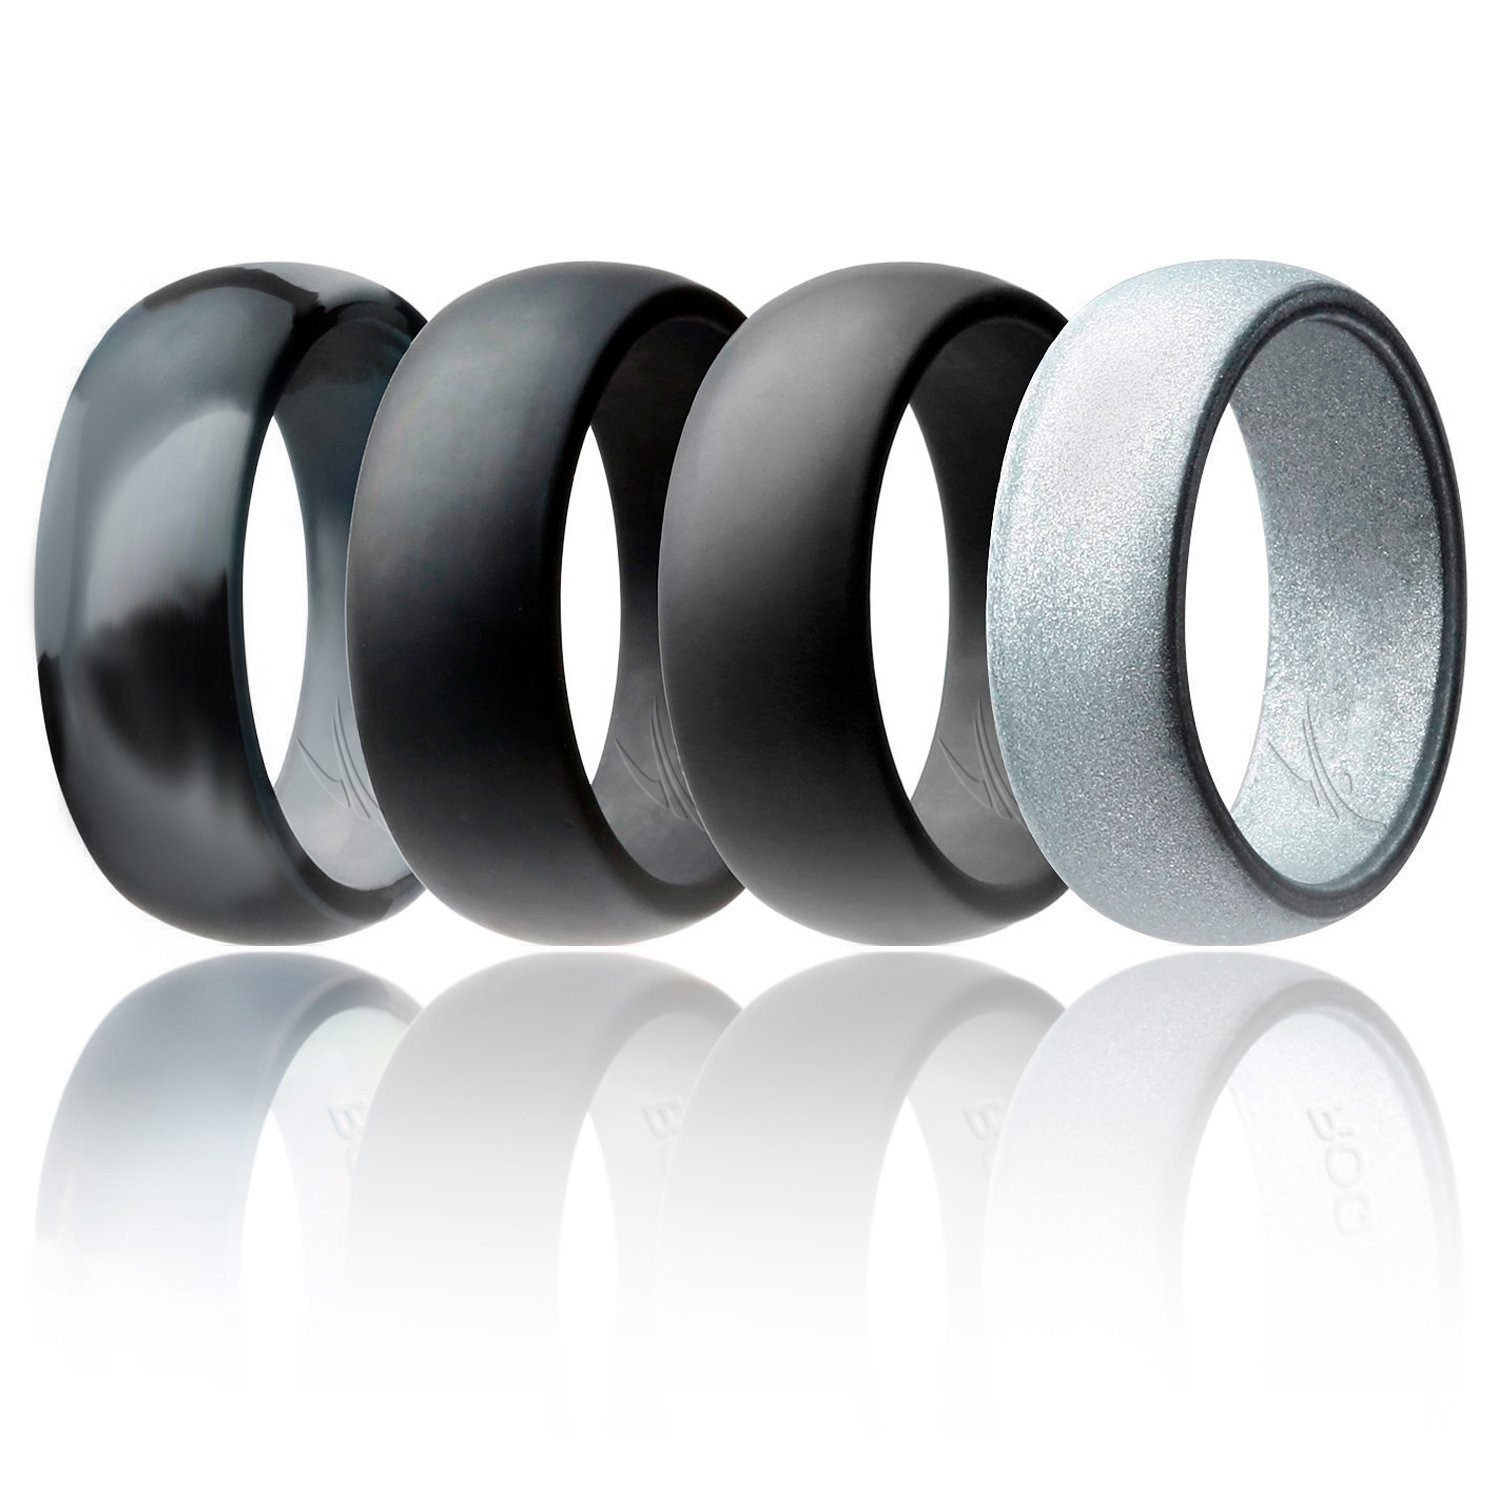 ROQ Silicone Wedding Ring for Men Affordable Silicone Rubber Band, 4 Pack - Black Camo, Metallic Look Silver, Black, Grey - Size 9